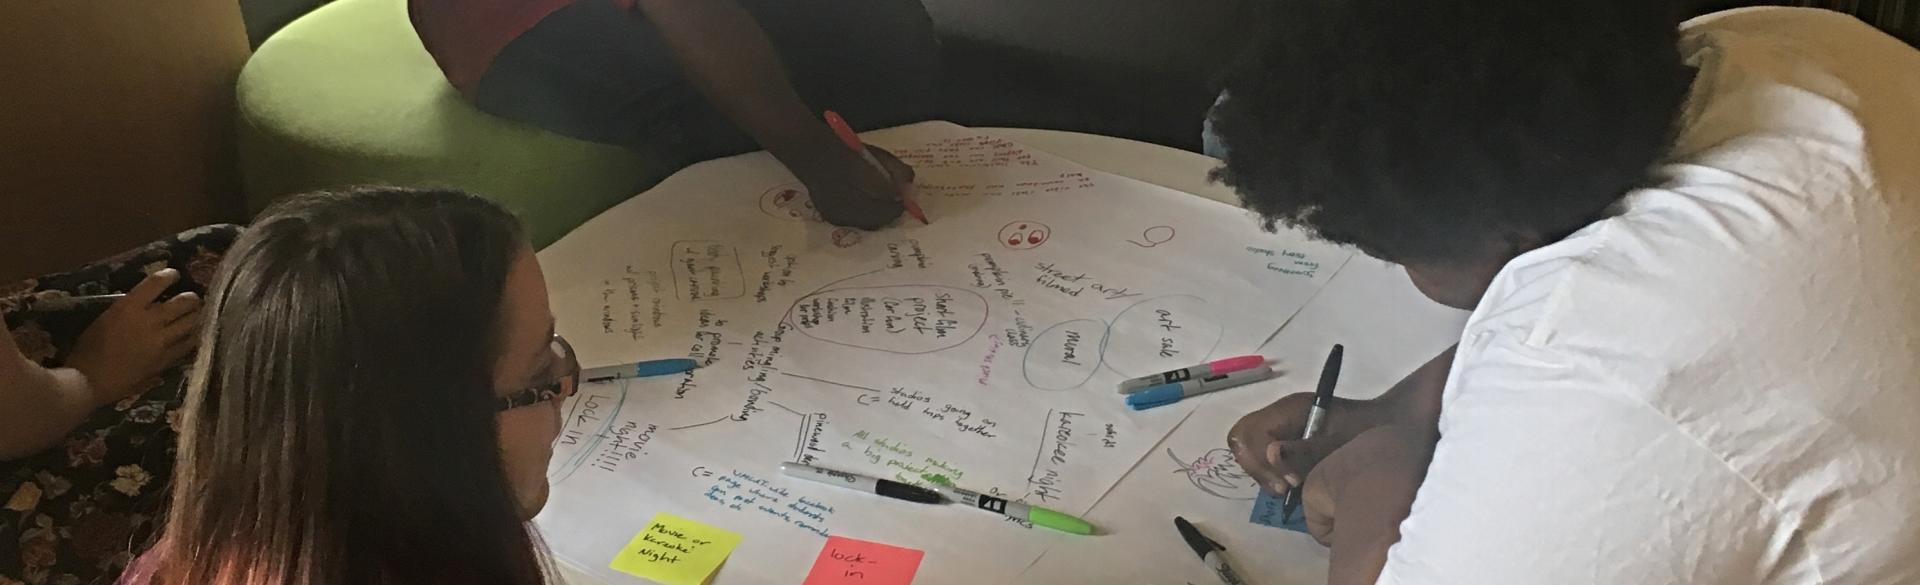 Teens working together with pen and paper on a table